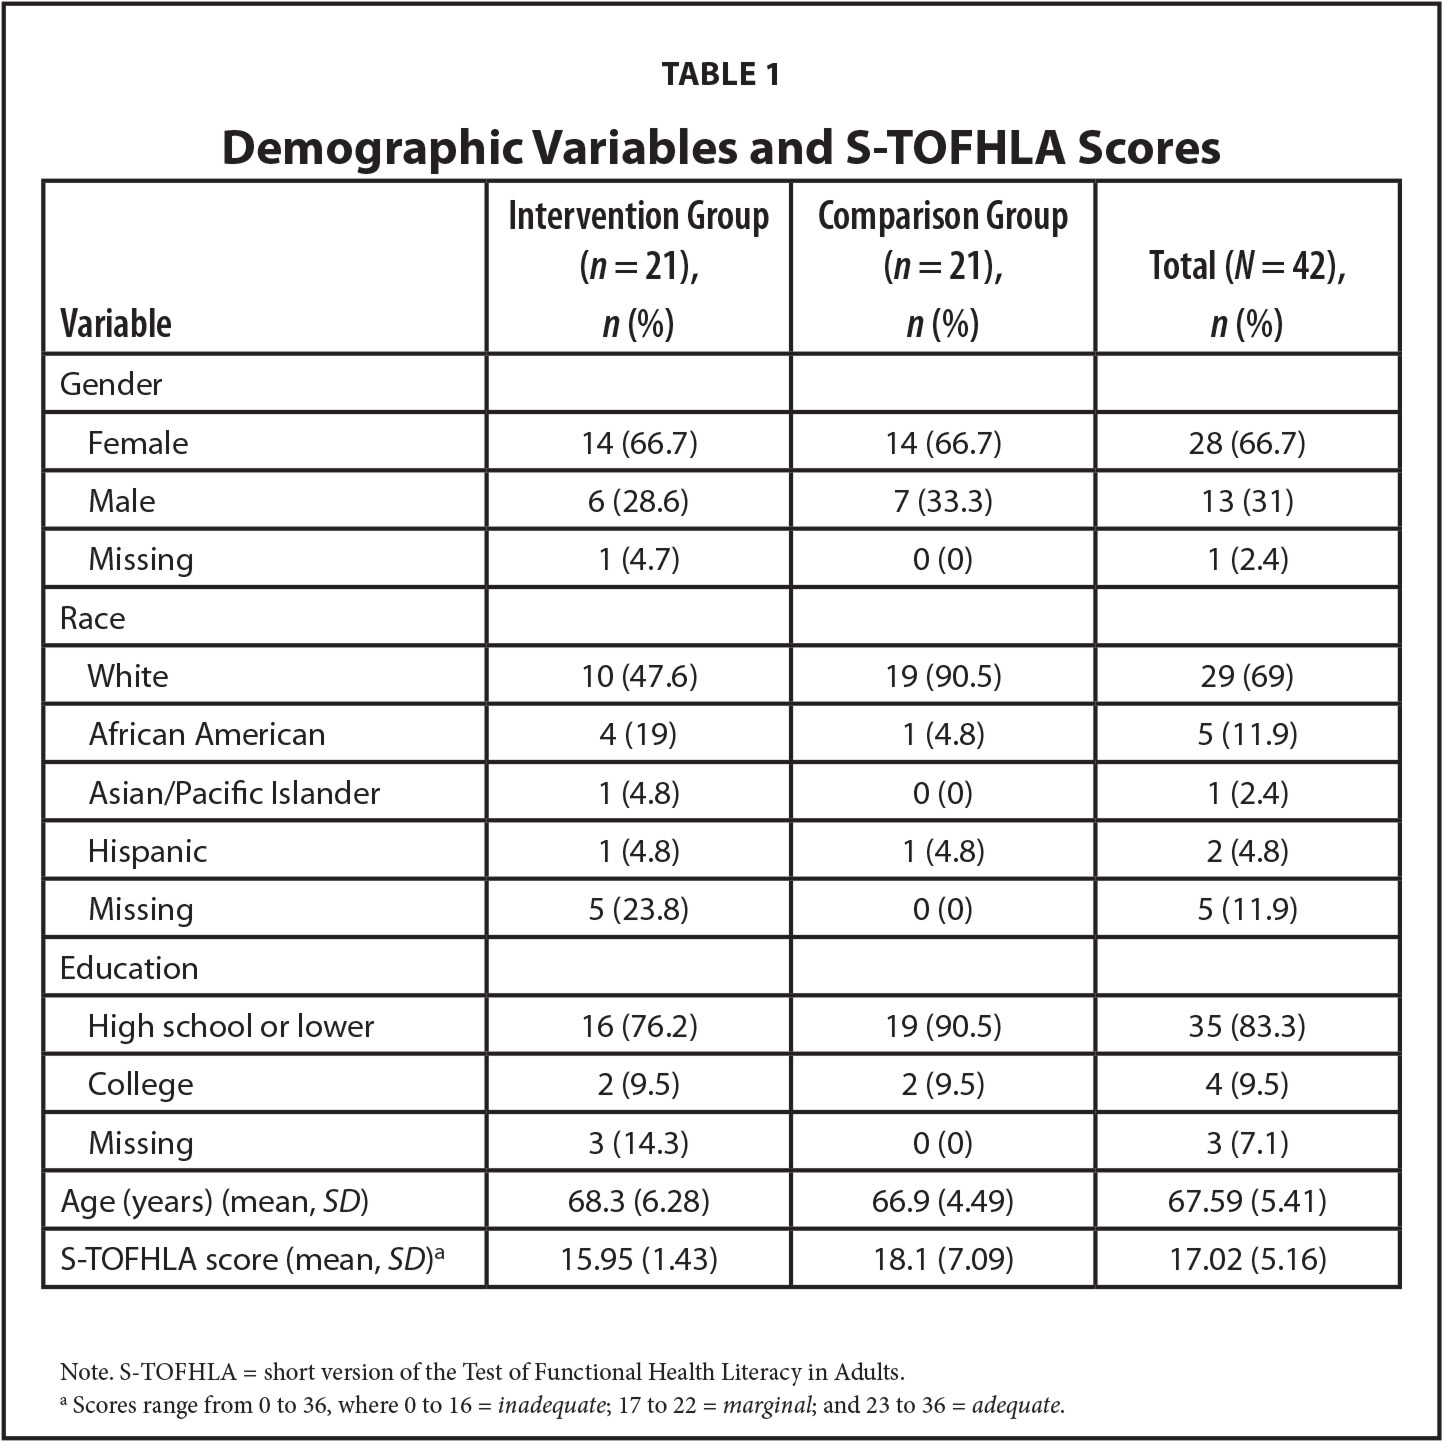 Demographic Variables and S-TOFHLA Scores